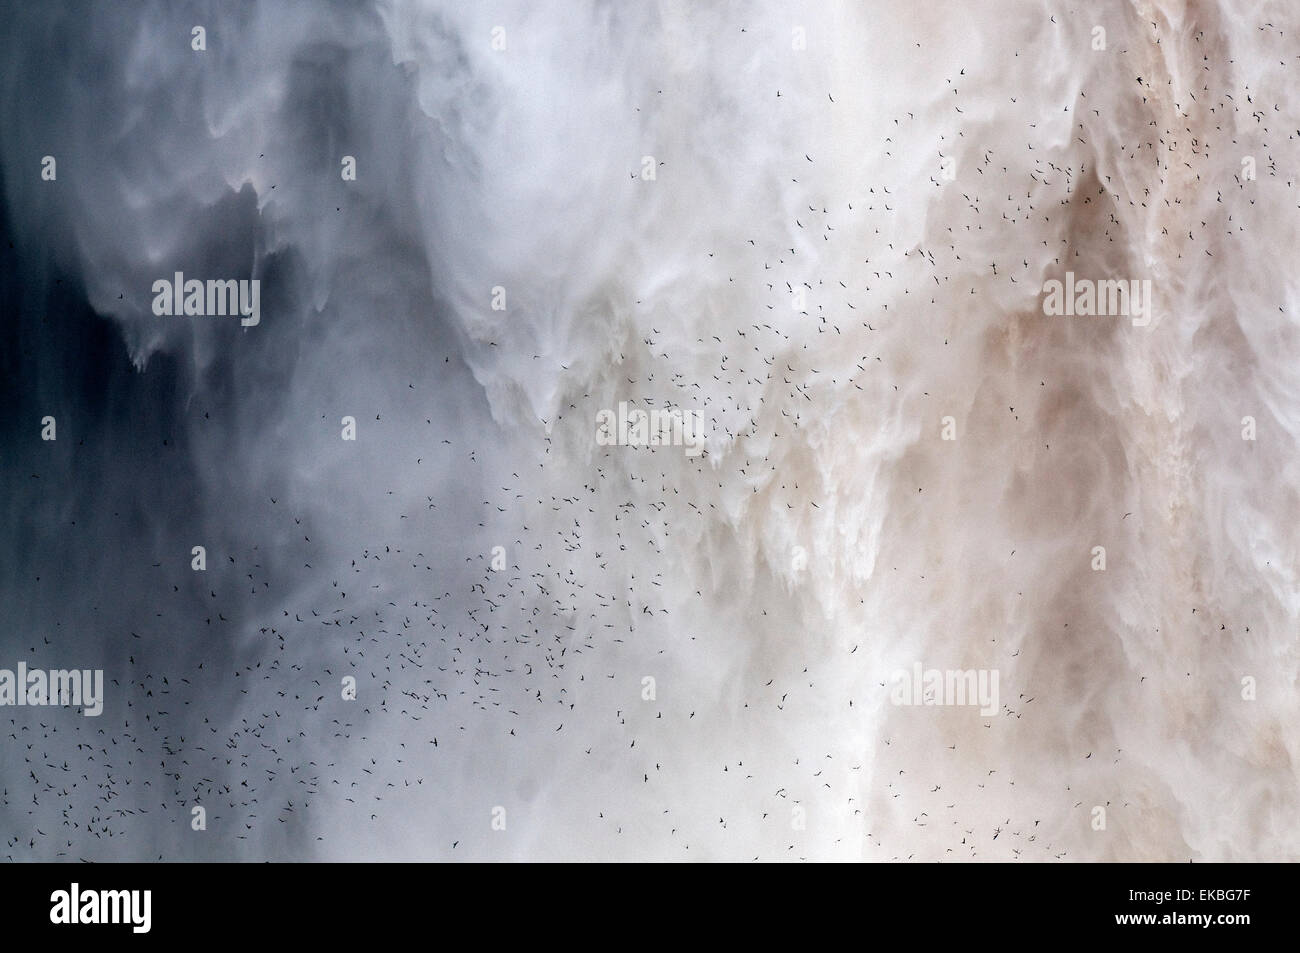 Flock of swifts flying to their roost behind the curtain of falling water of Kaieteur Falls, Guyana, South America - Stock Image